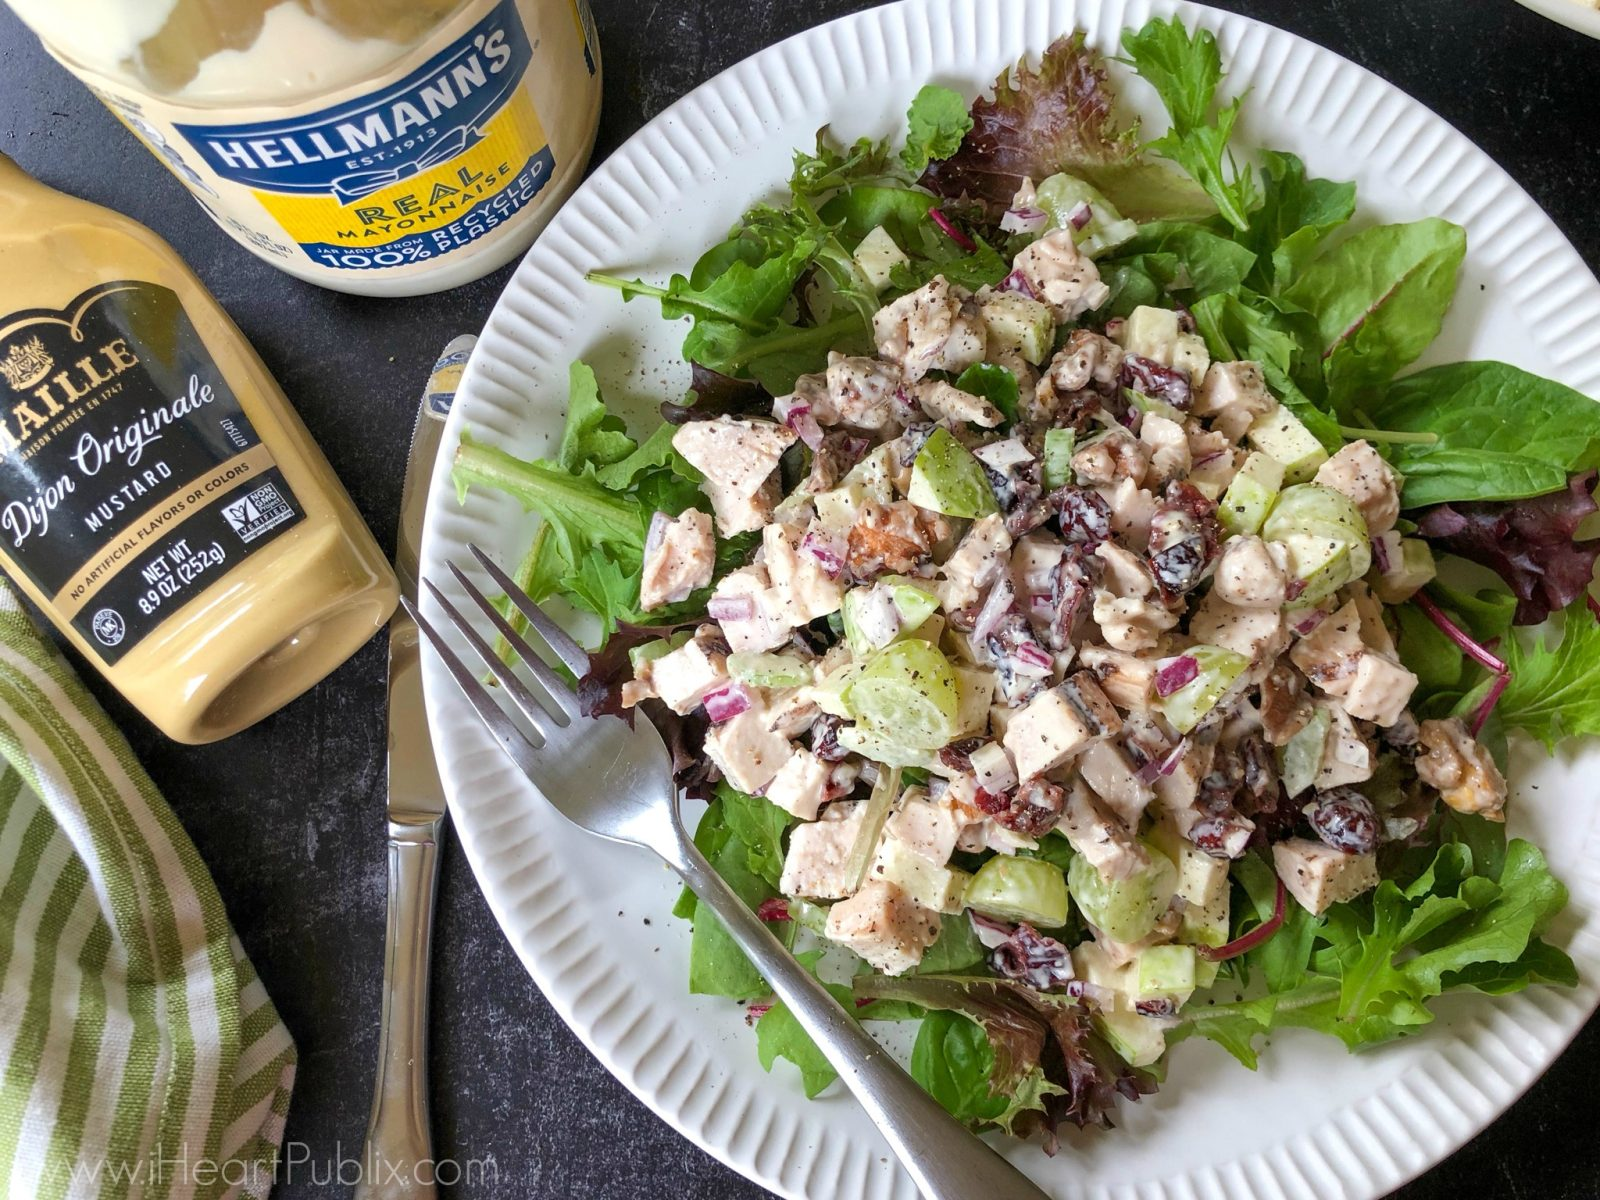 Serve Up My Harvest Chicken Salad & Save On The Ingredients At Publix on I Heart Publix